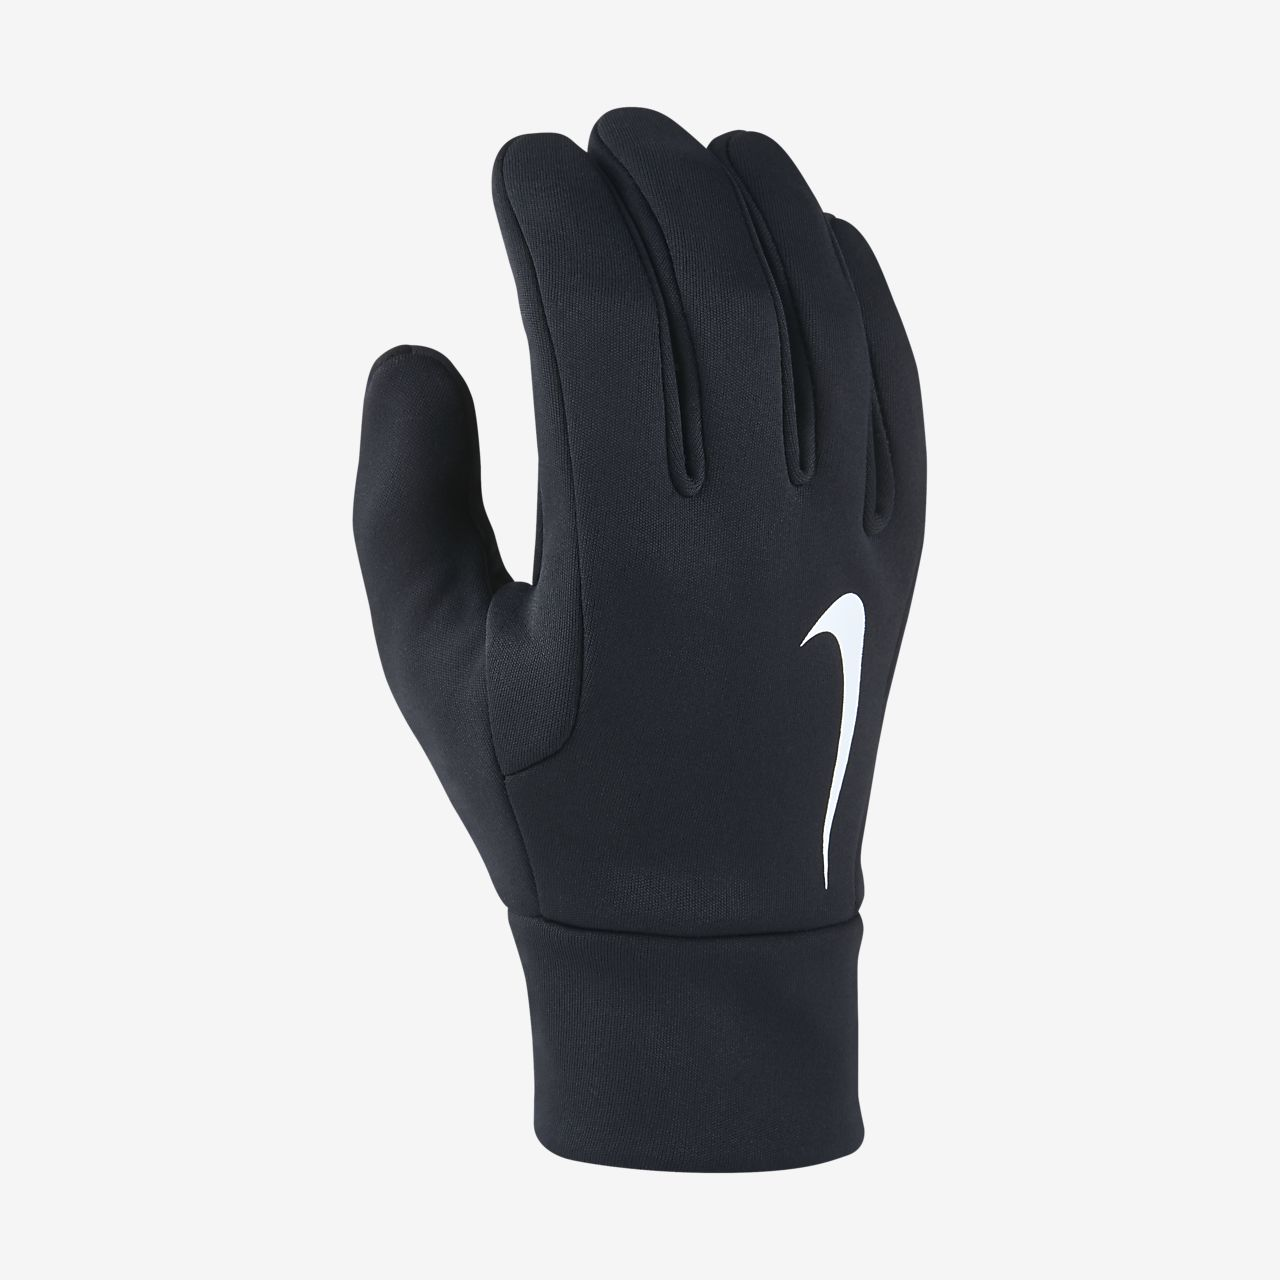 Gants de football Nike HyperWarm Field Player pour Enfant